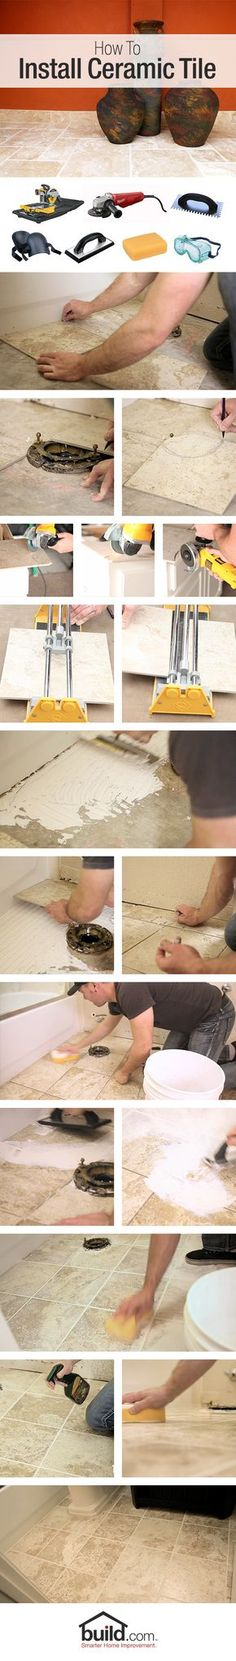 Revamp your floor: learn how to install ceramic tile. We'll get you from inspiration to installation with these step by step flooring instructions. DIY floor #smarterhomeimprovement